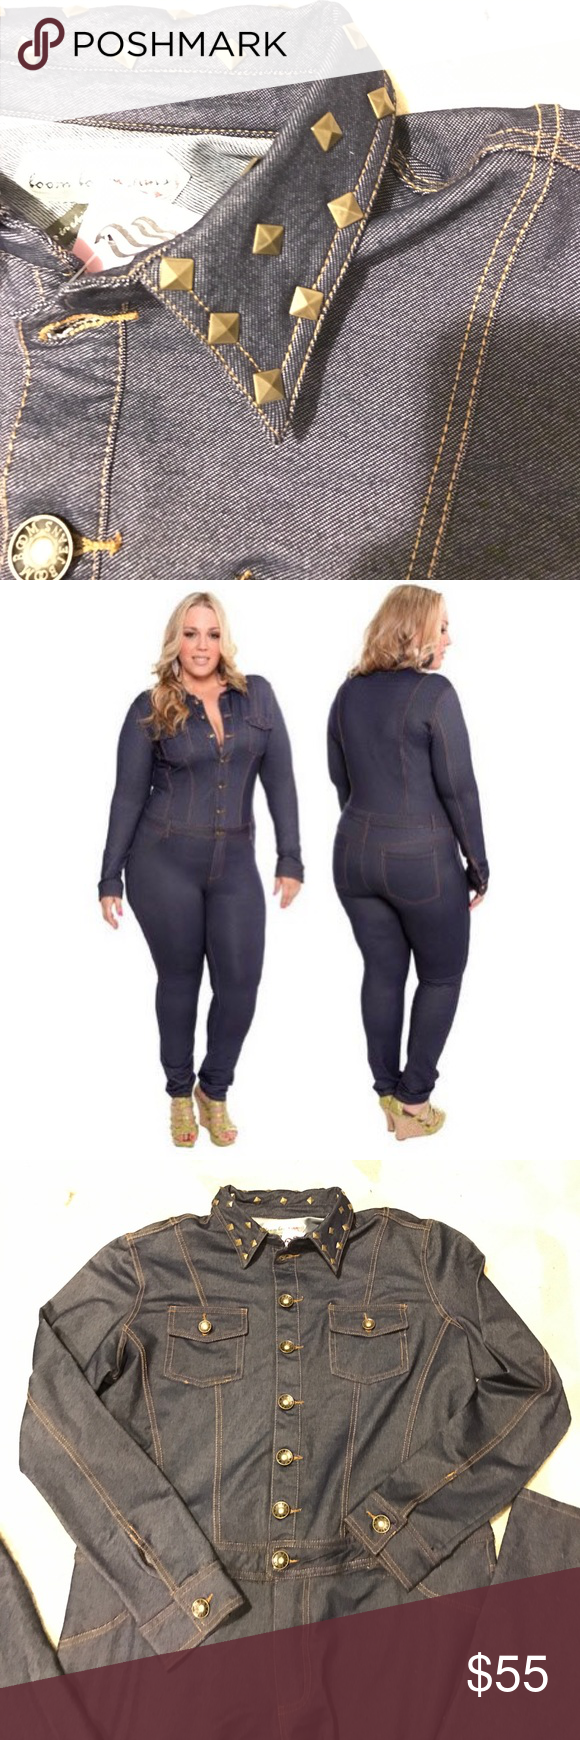 84033d6cfce Torrid denim jumpsuit w studded collar BNWT Torrid denim jumpsuit w studded  collar BNWT. Stretchy. Contract stitching. Belt loops and button zip  closure.